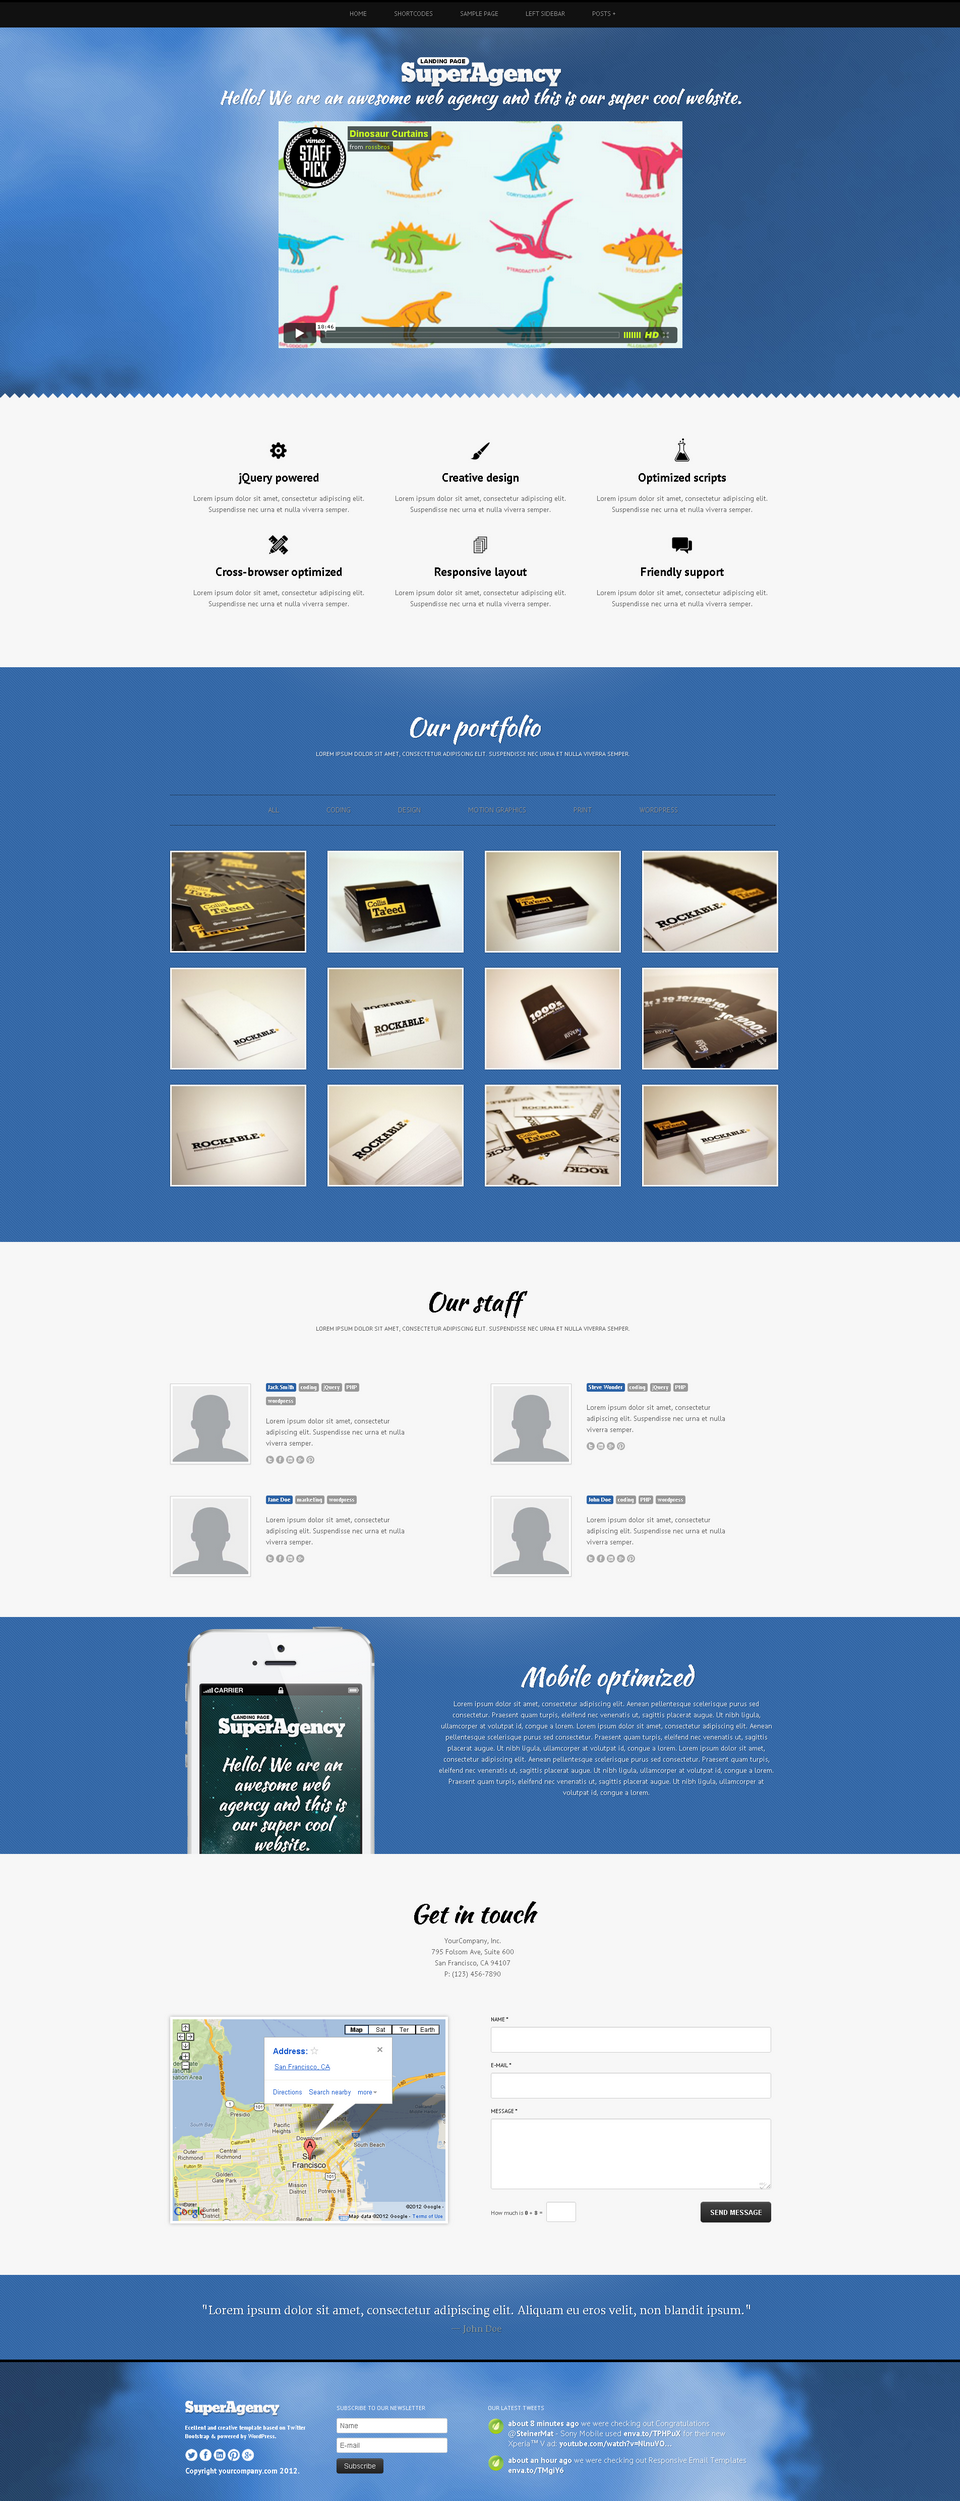 Super Agency - Responsive WordPress Single Page - Super Agency WordPress Theme - sky theme with slider header